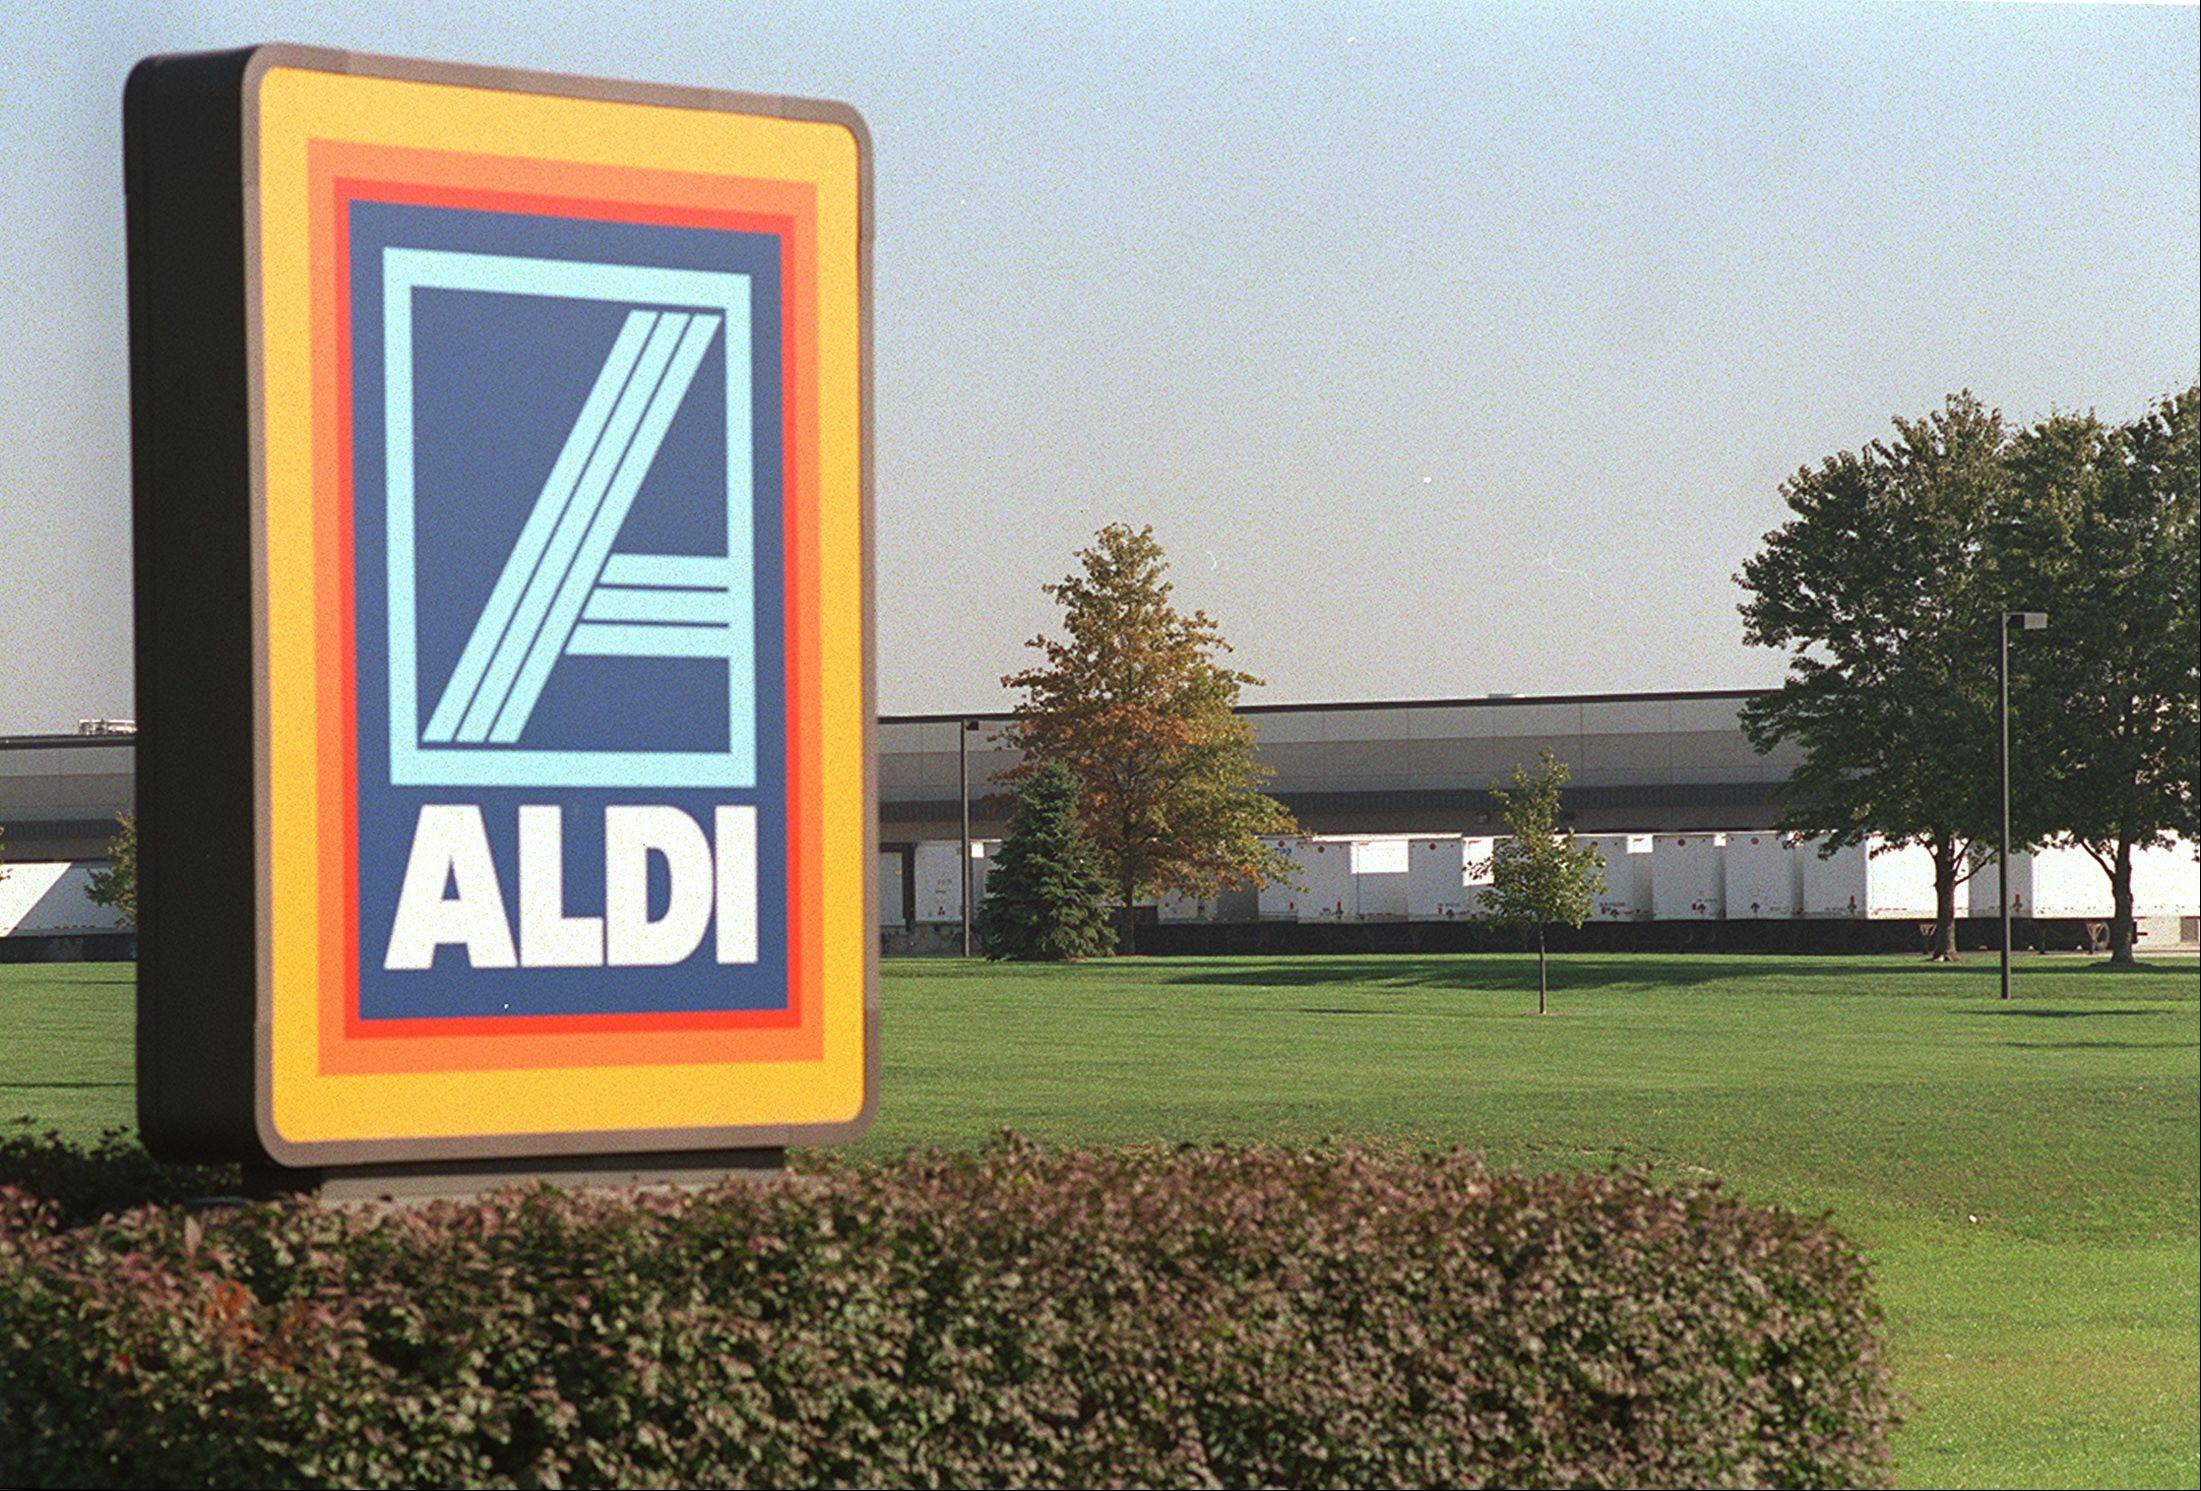 Batavia-based ALDI has announced plans to increase its rate of U.S. expansion by opening roughly 130 stores a year the next five years, up from the current rate of 80 stores a year. The grocer aims to operate 2,000 stores across the nation by 2018.